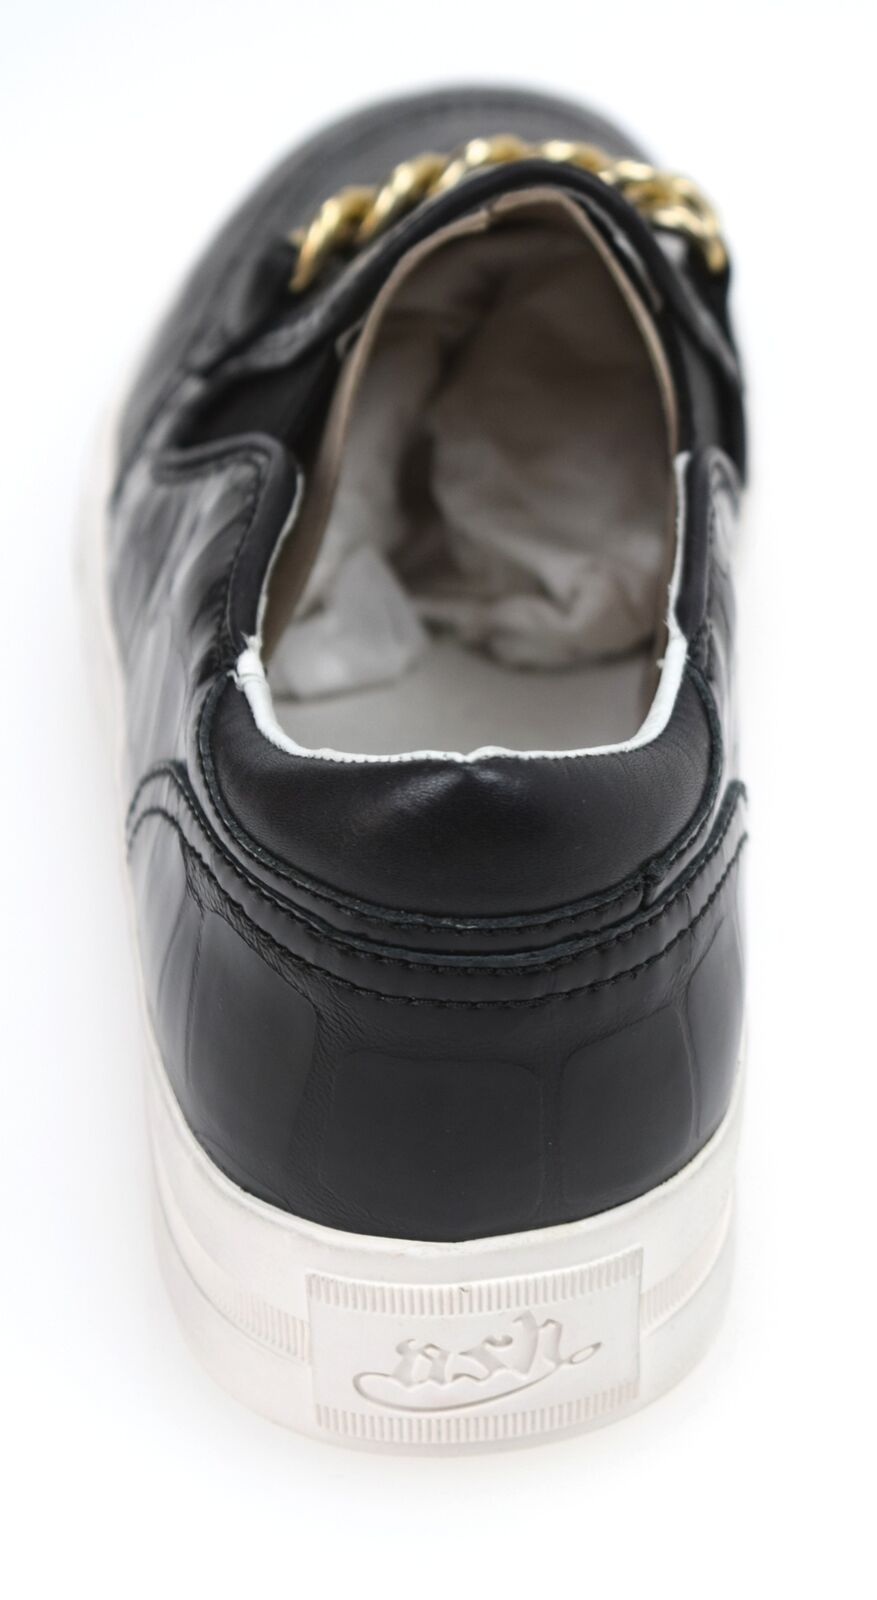 cheap for discount d4142 7a514 ... MEN S SHOES SHOES SHOES SNEAKERS NIKE CLASSIC CORTEZ LEATHER  749571 002   b0ebf8 ...